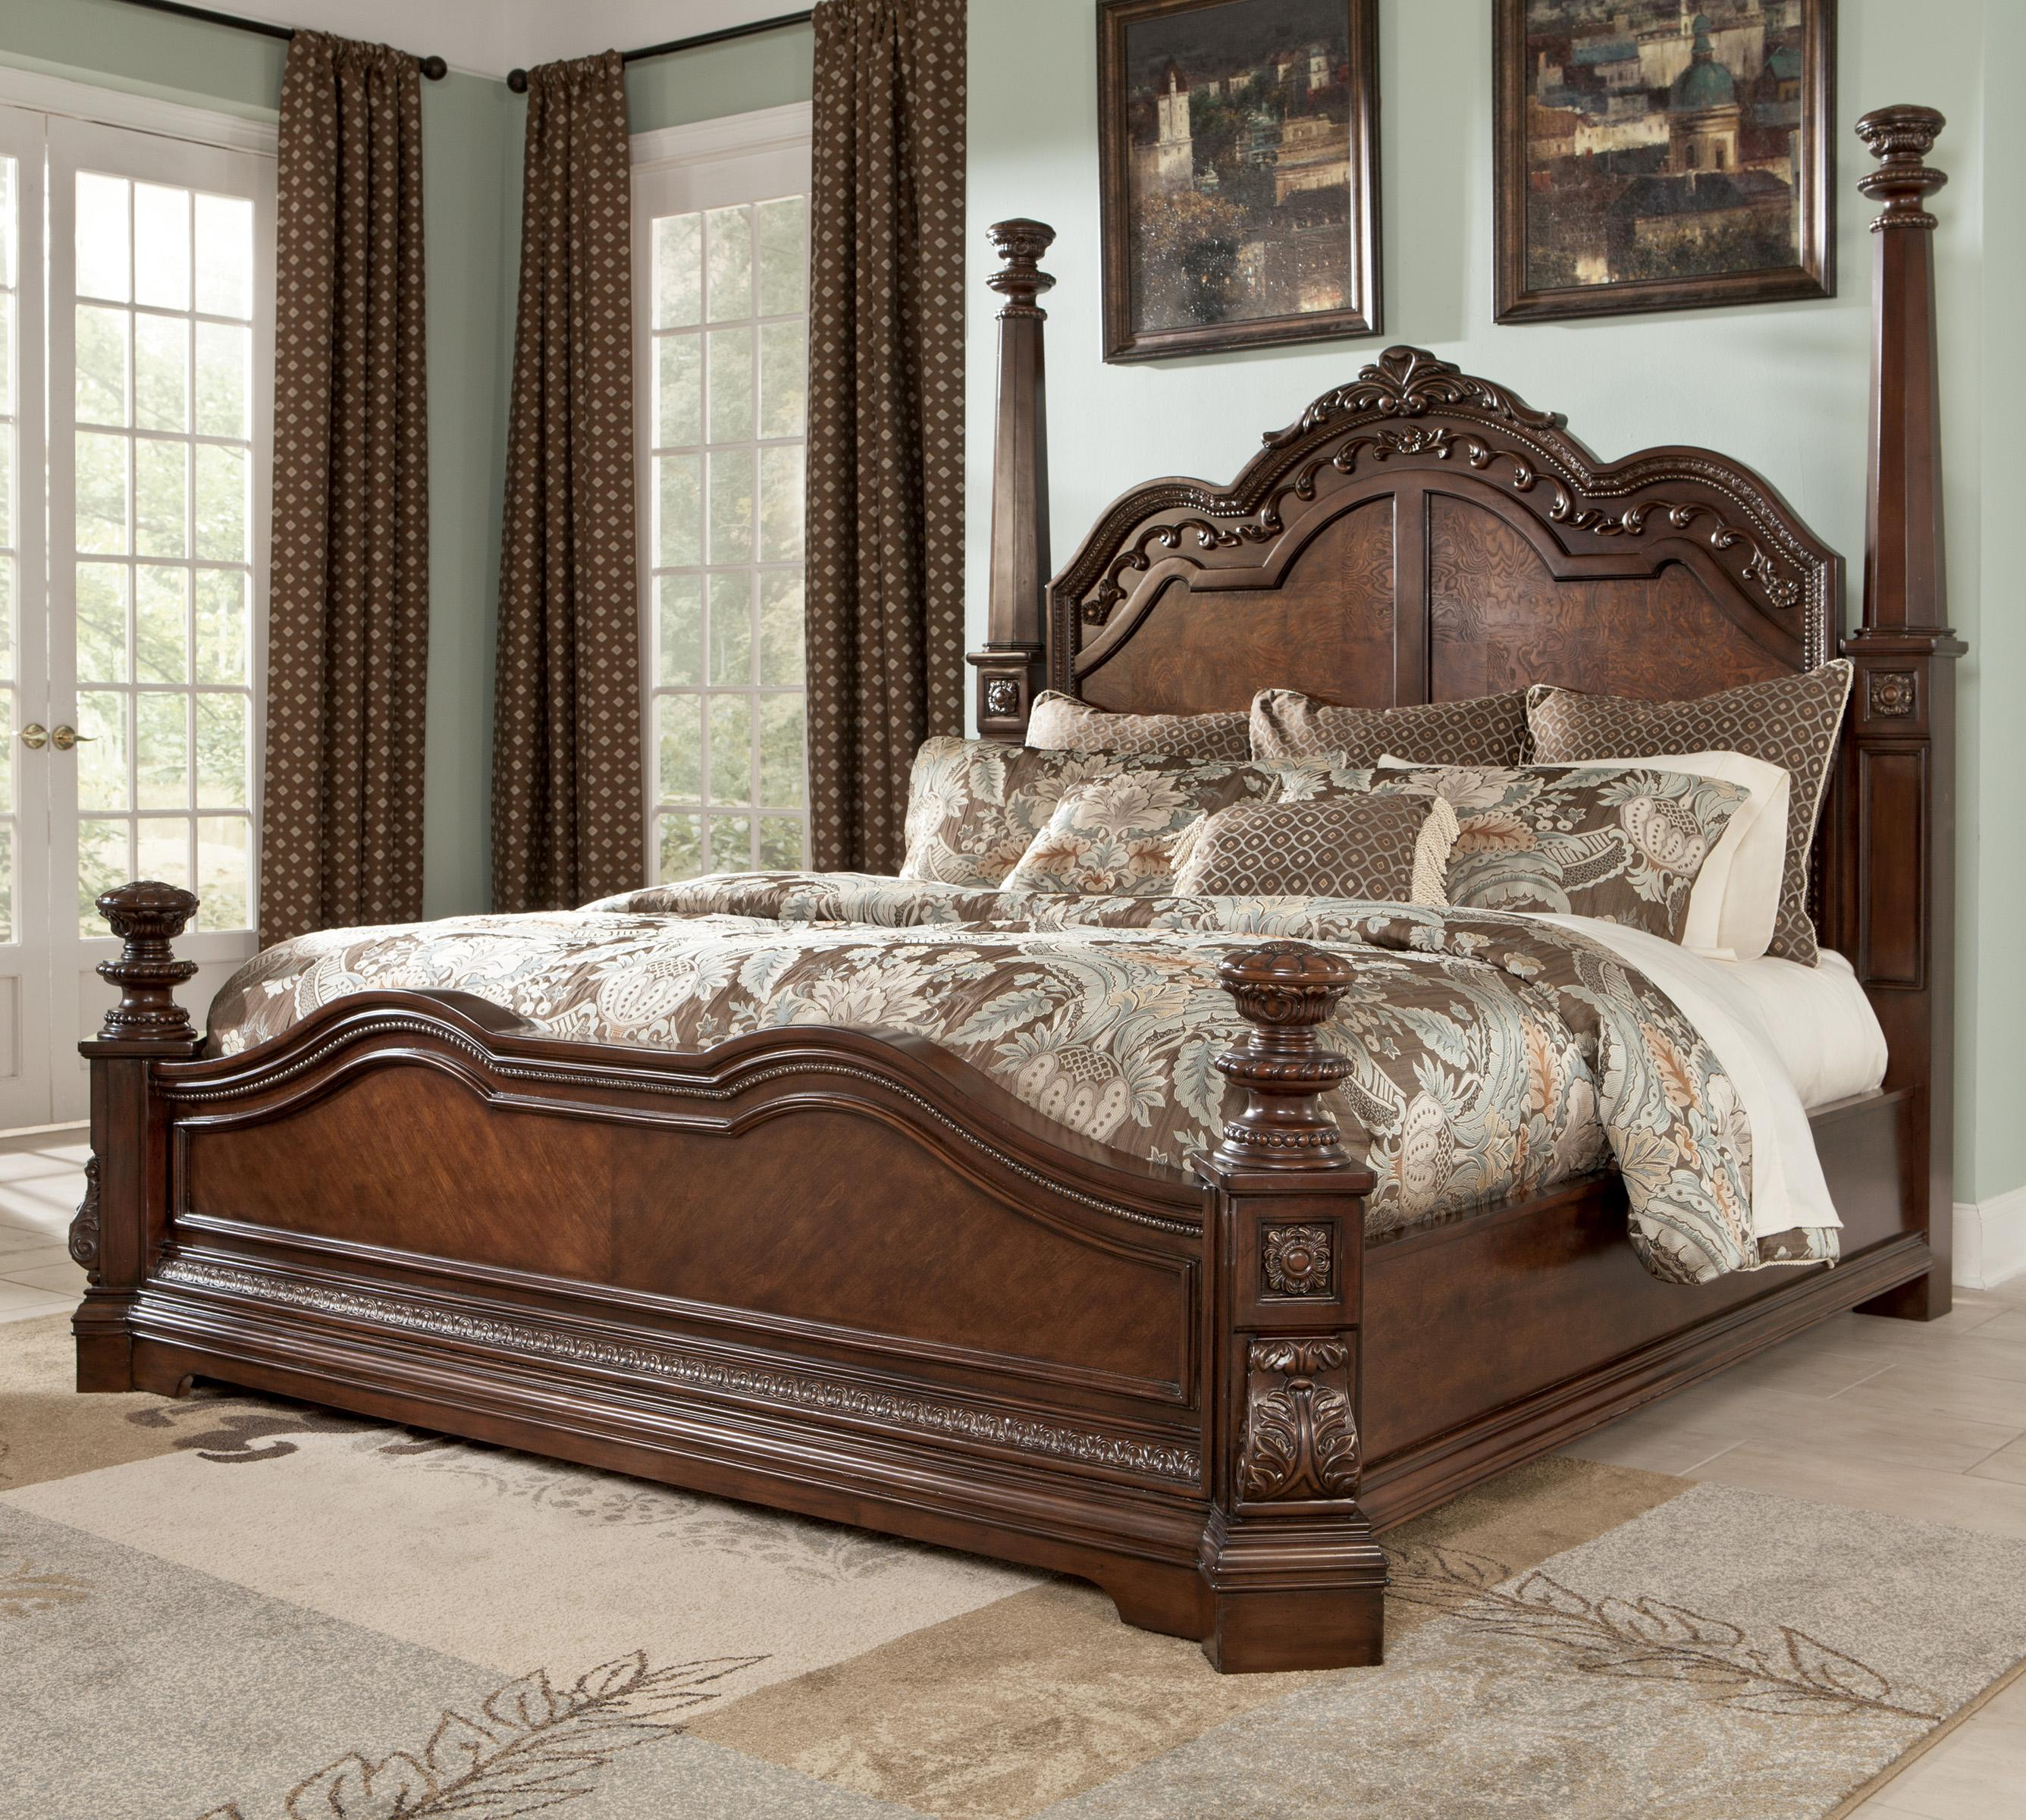 Millennium Ledelle Traditional King Poster Bed with Tall Headboard Posts -  AHFA - Poster Bed Dealer Locator